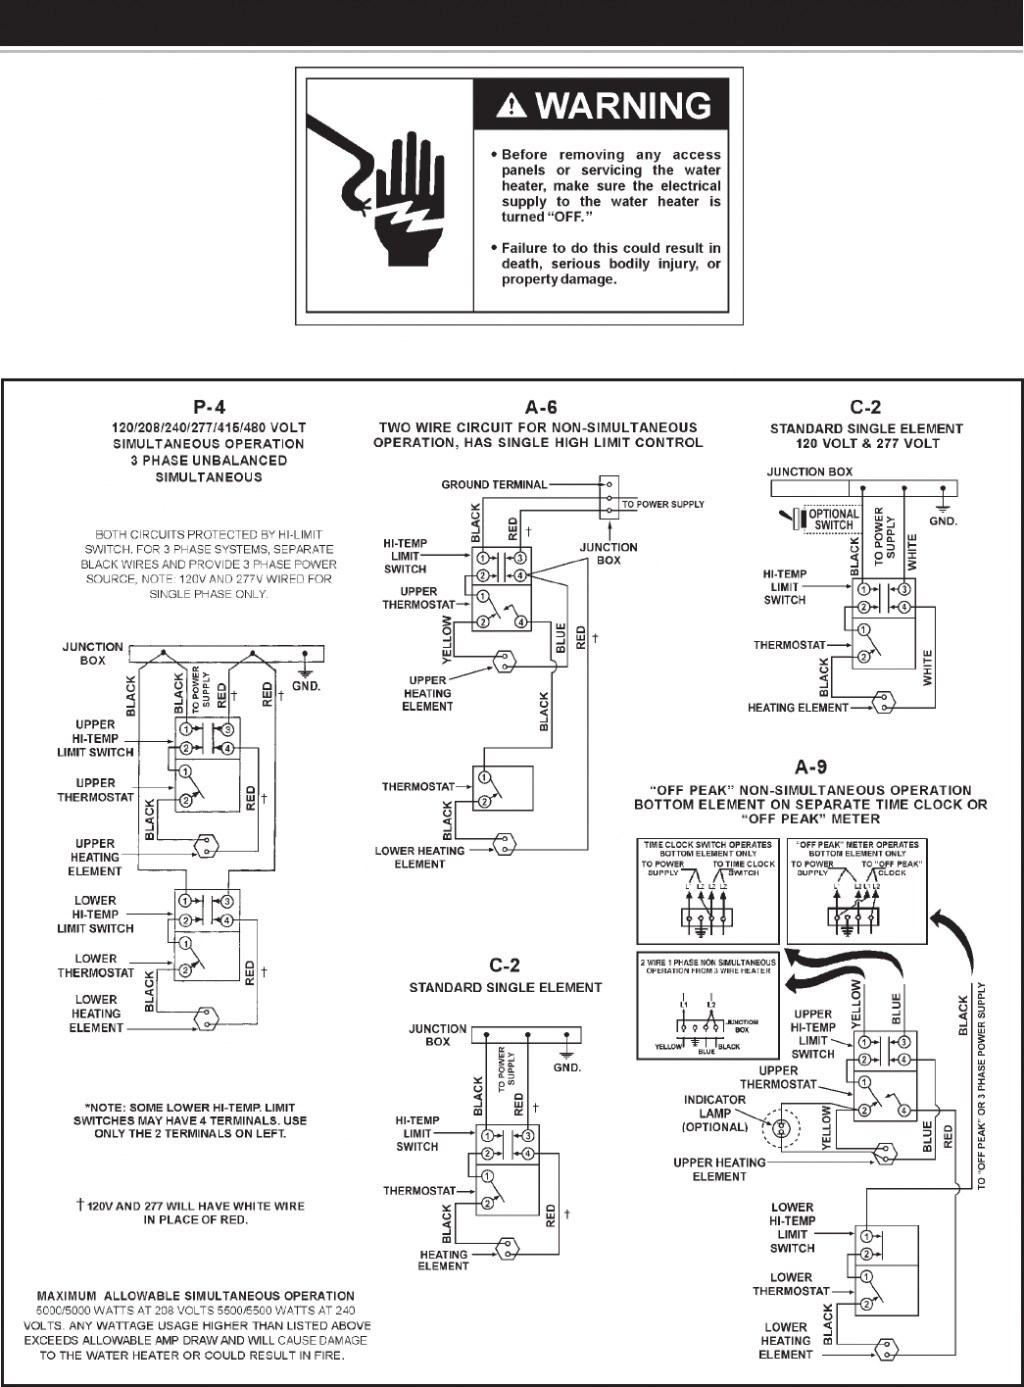 ao smith electric motor wiring diagram Download-ao smith wiring diagram ac motor free wiring diagram rh xwiaw us 17-p